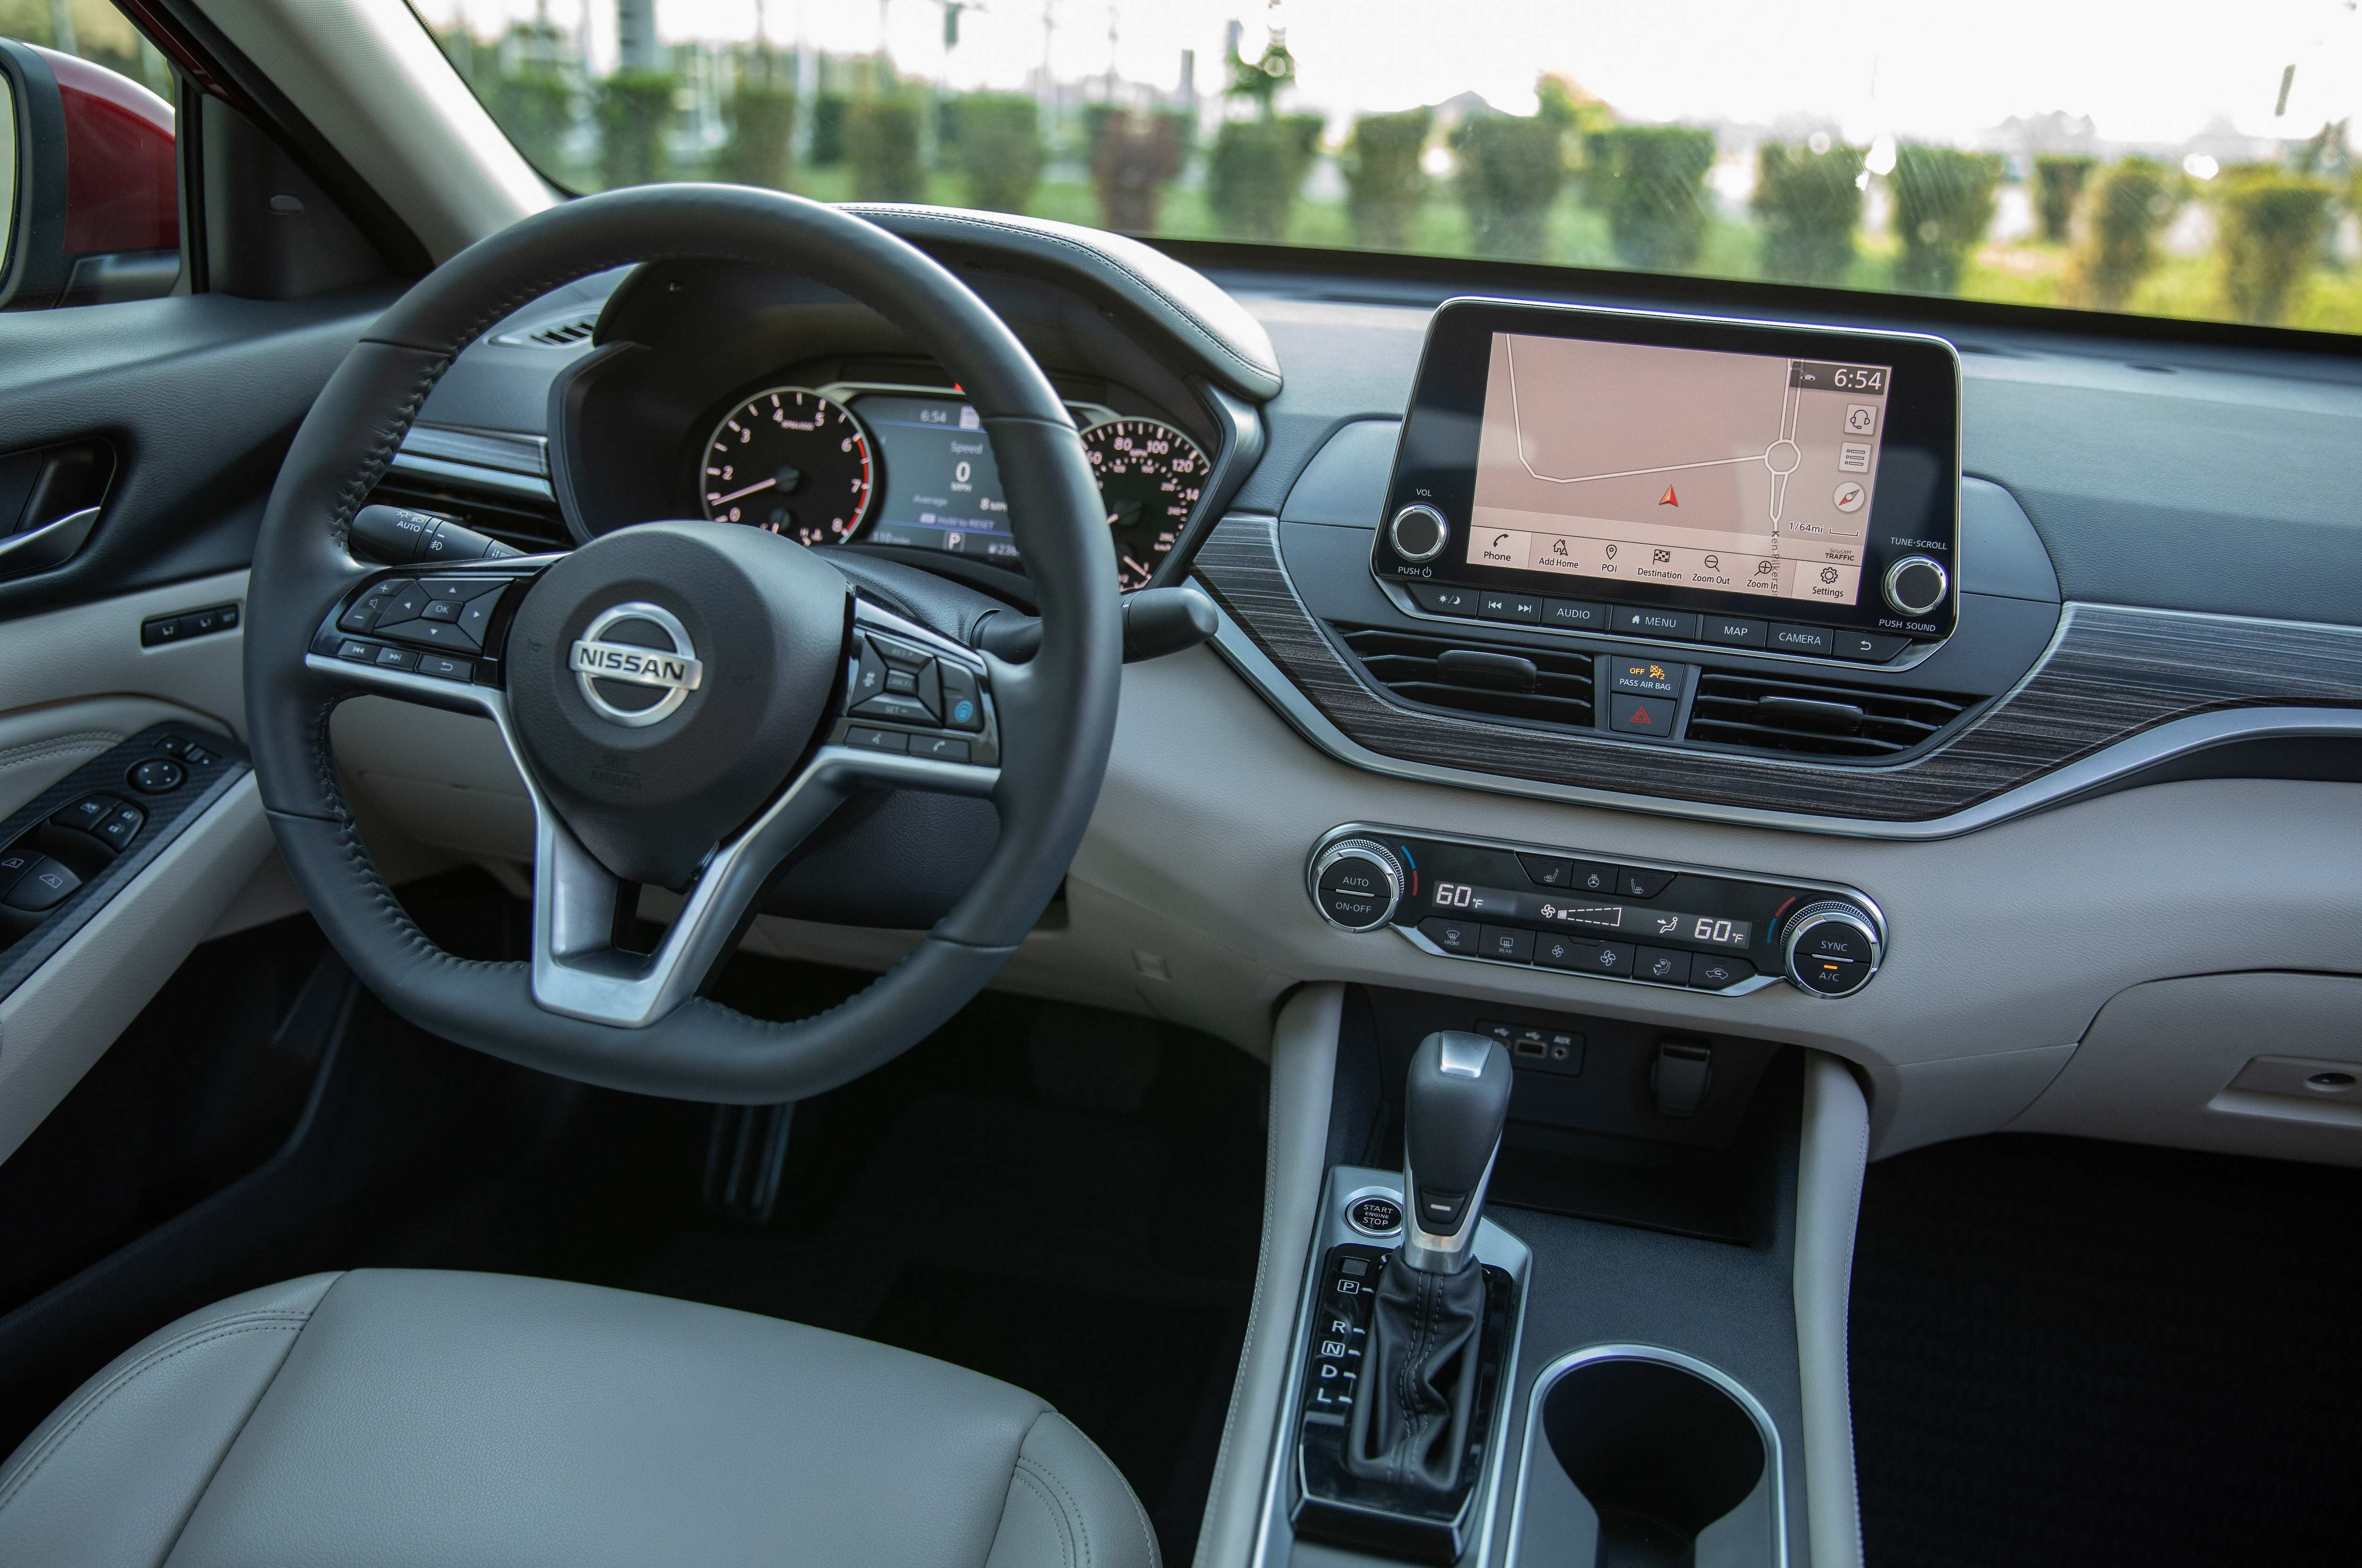 41 Concept of 2019 Nissan Altima Interior Concept by 2019 Nissan Altima Interior